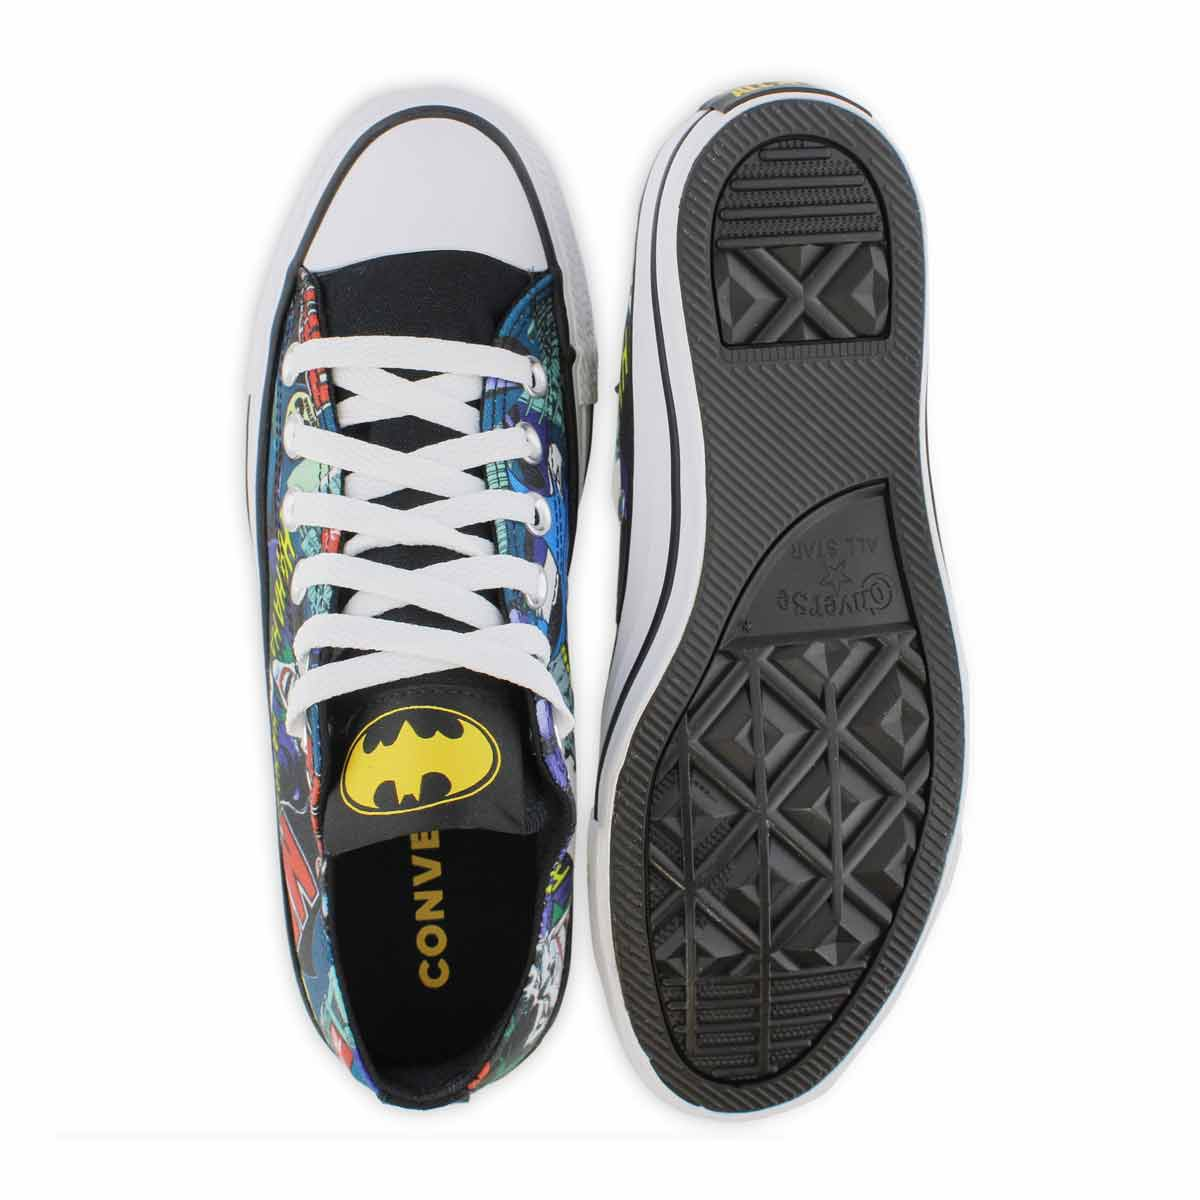 Lds Batman multi/wht oxford sneaker